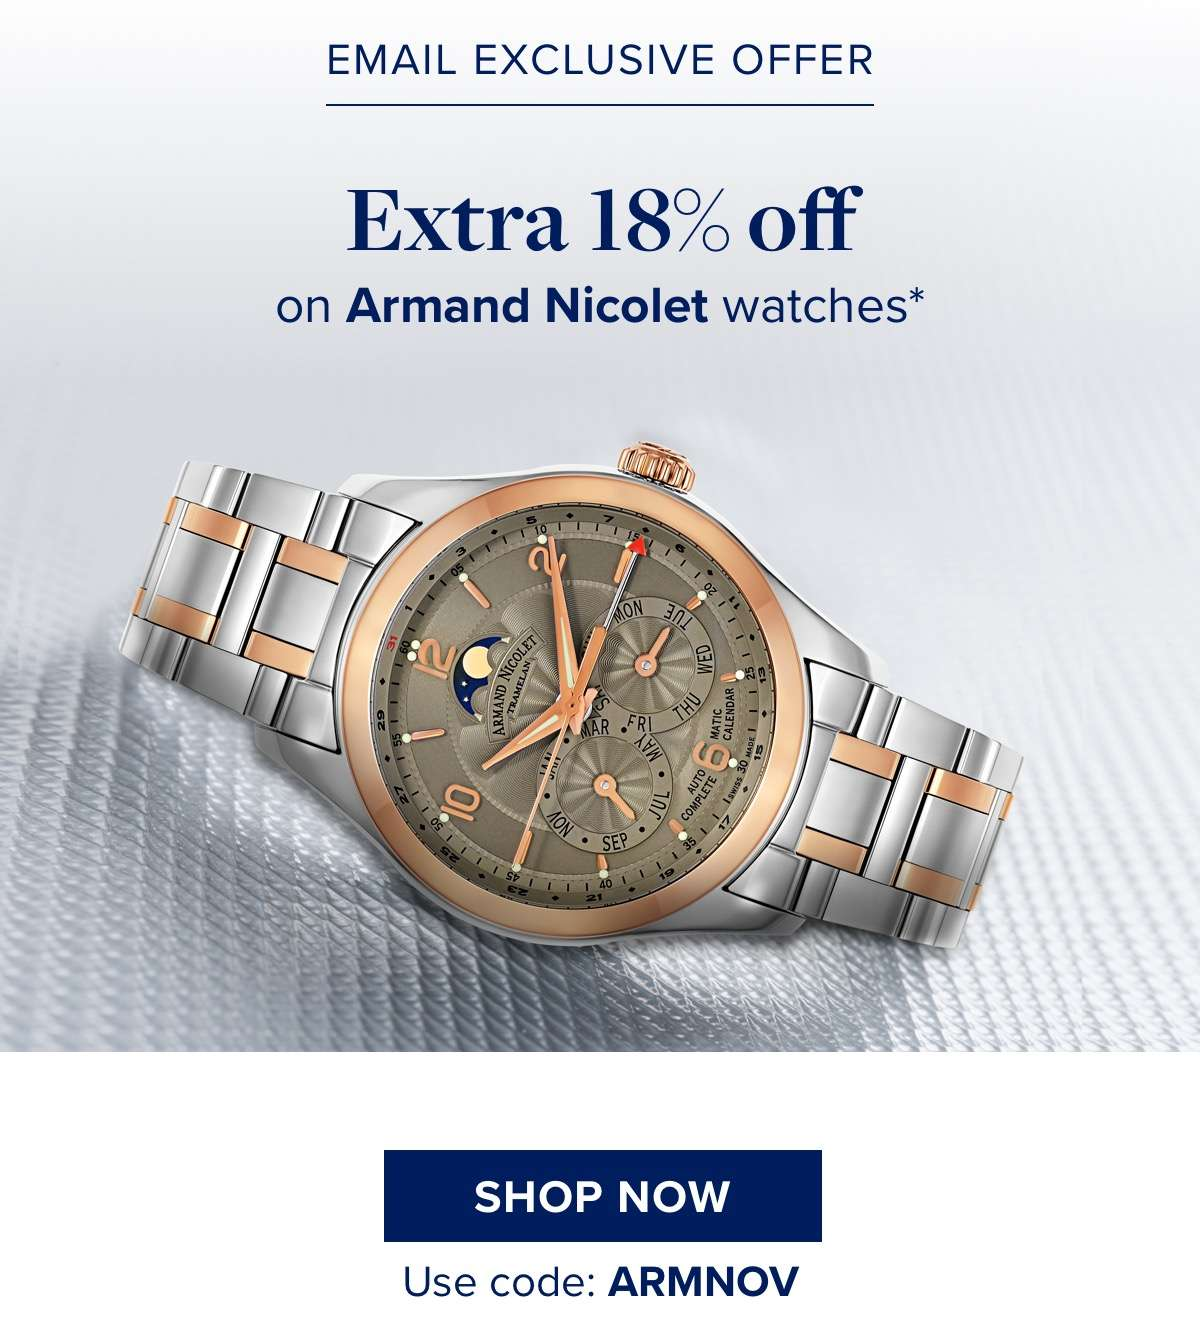 Email Exclusive Offer 18% off on all Armand Nicolet watches*  SHOP NOW Use code: ARMNOV